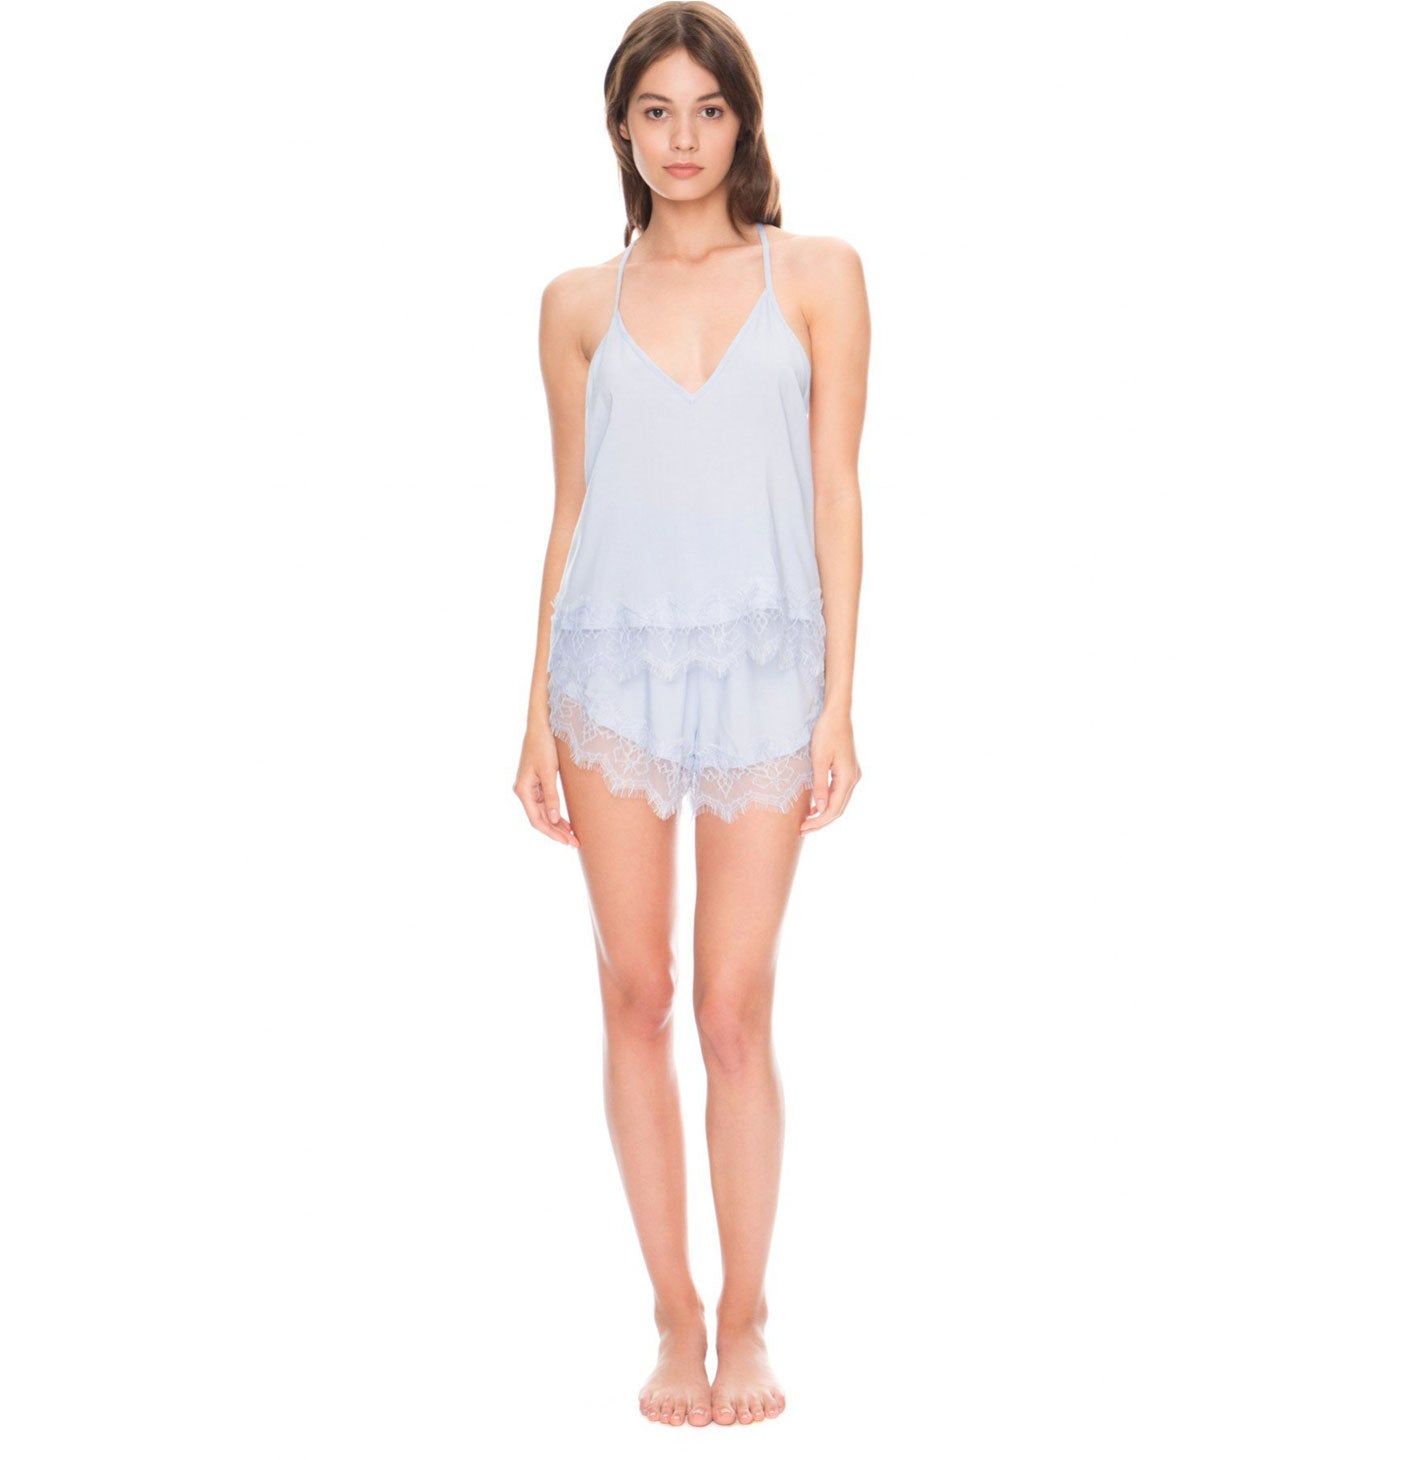 Electric Love Camisole